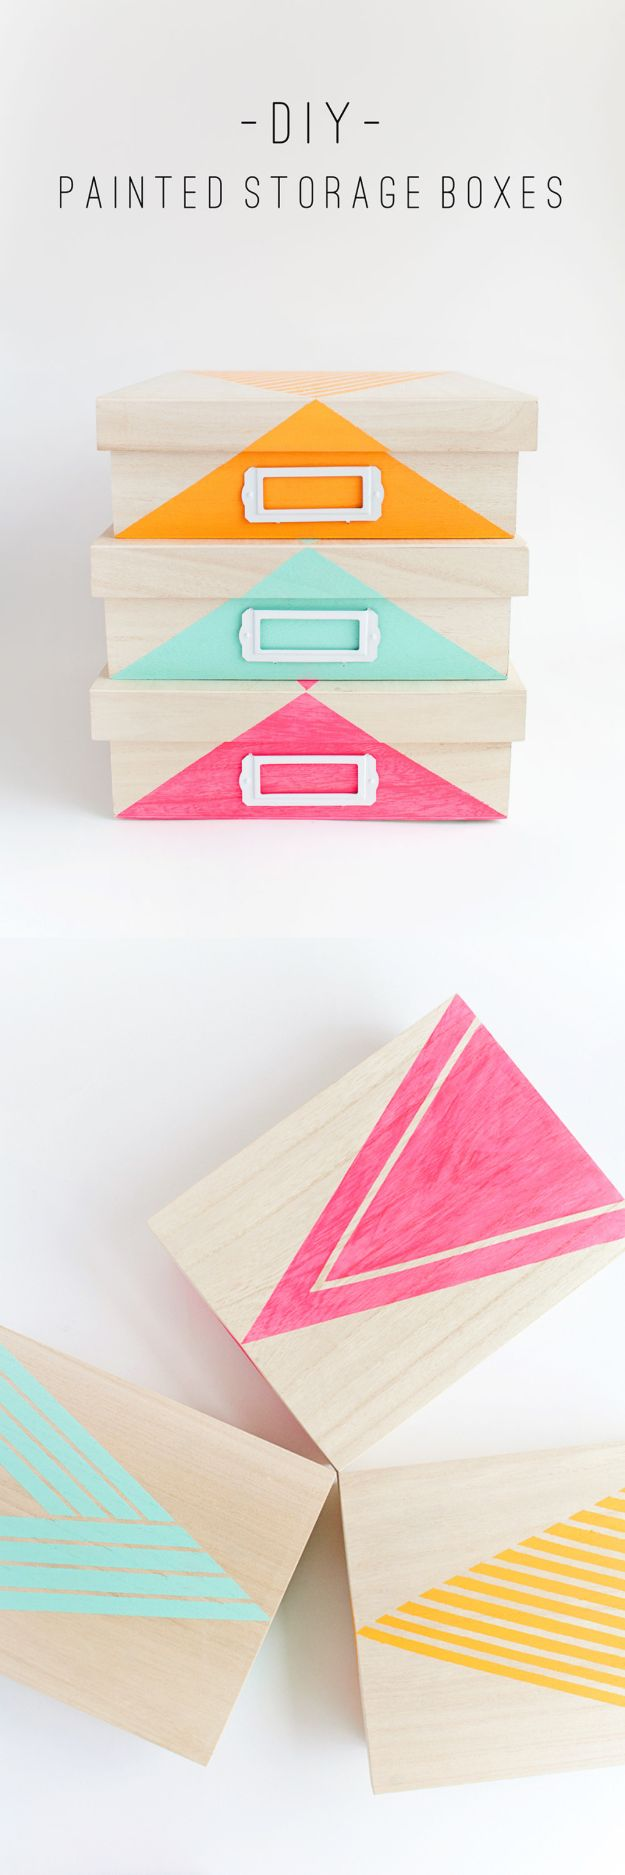 Cheap Last Minute Gifts DIY - DIY Painted Storage Boxes - Inexpensive DIY Gift Ideas To Make On A Budget - Homemade Christmas and Birthday Presents to Make For Mom, Dad, Daughter & Son, Kids, Friends and Family - Cool and Creative Crafts, Home Decor and Accessories, Fun Gadgets and Phone Stuff - Quick Gifts From Dollar Tree Items #diygifts #cheapgifts #christmasgifts